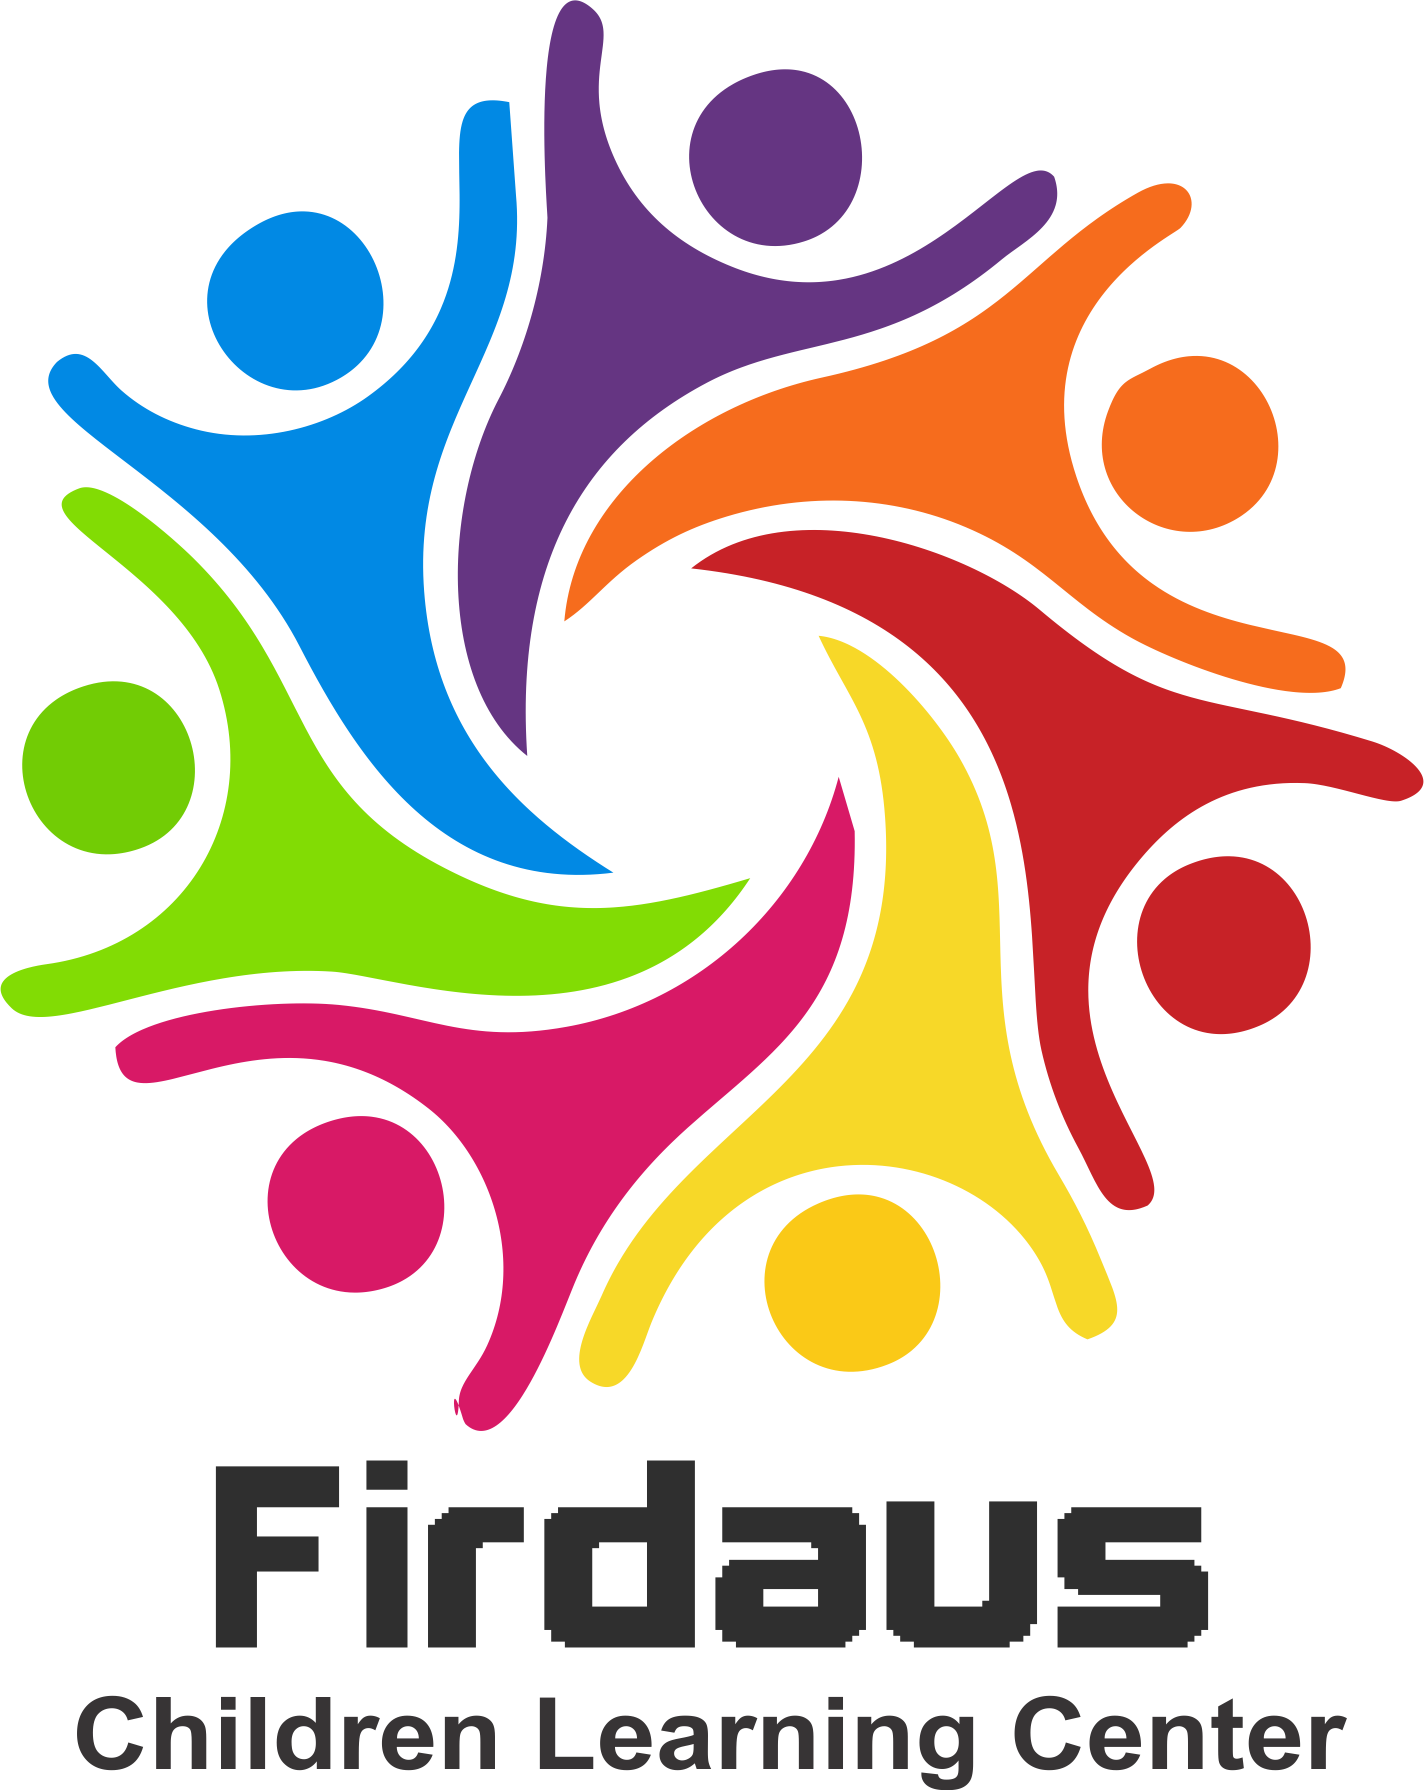 Firdaus Children Learning Center